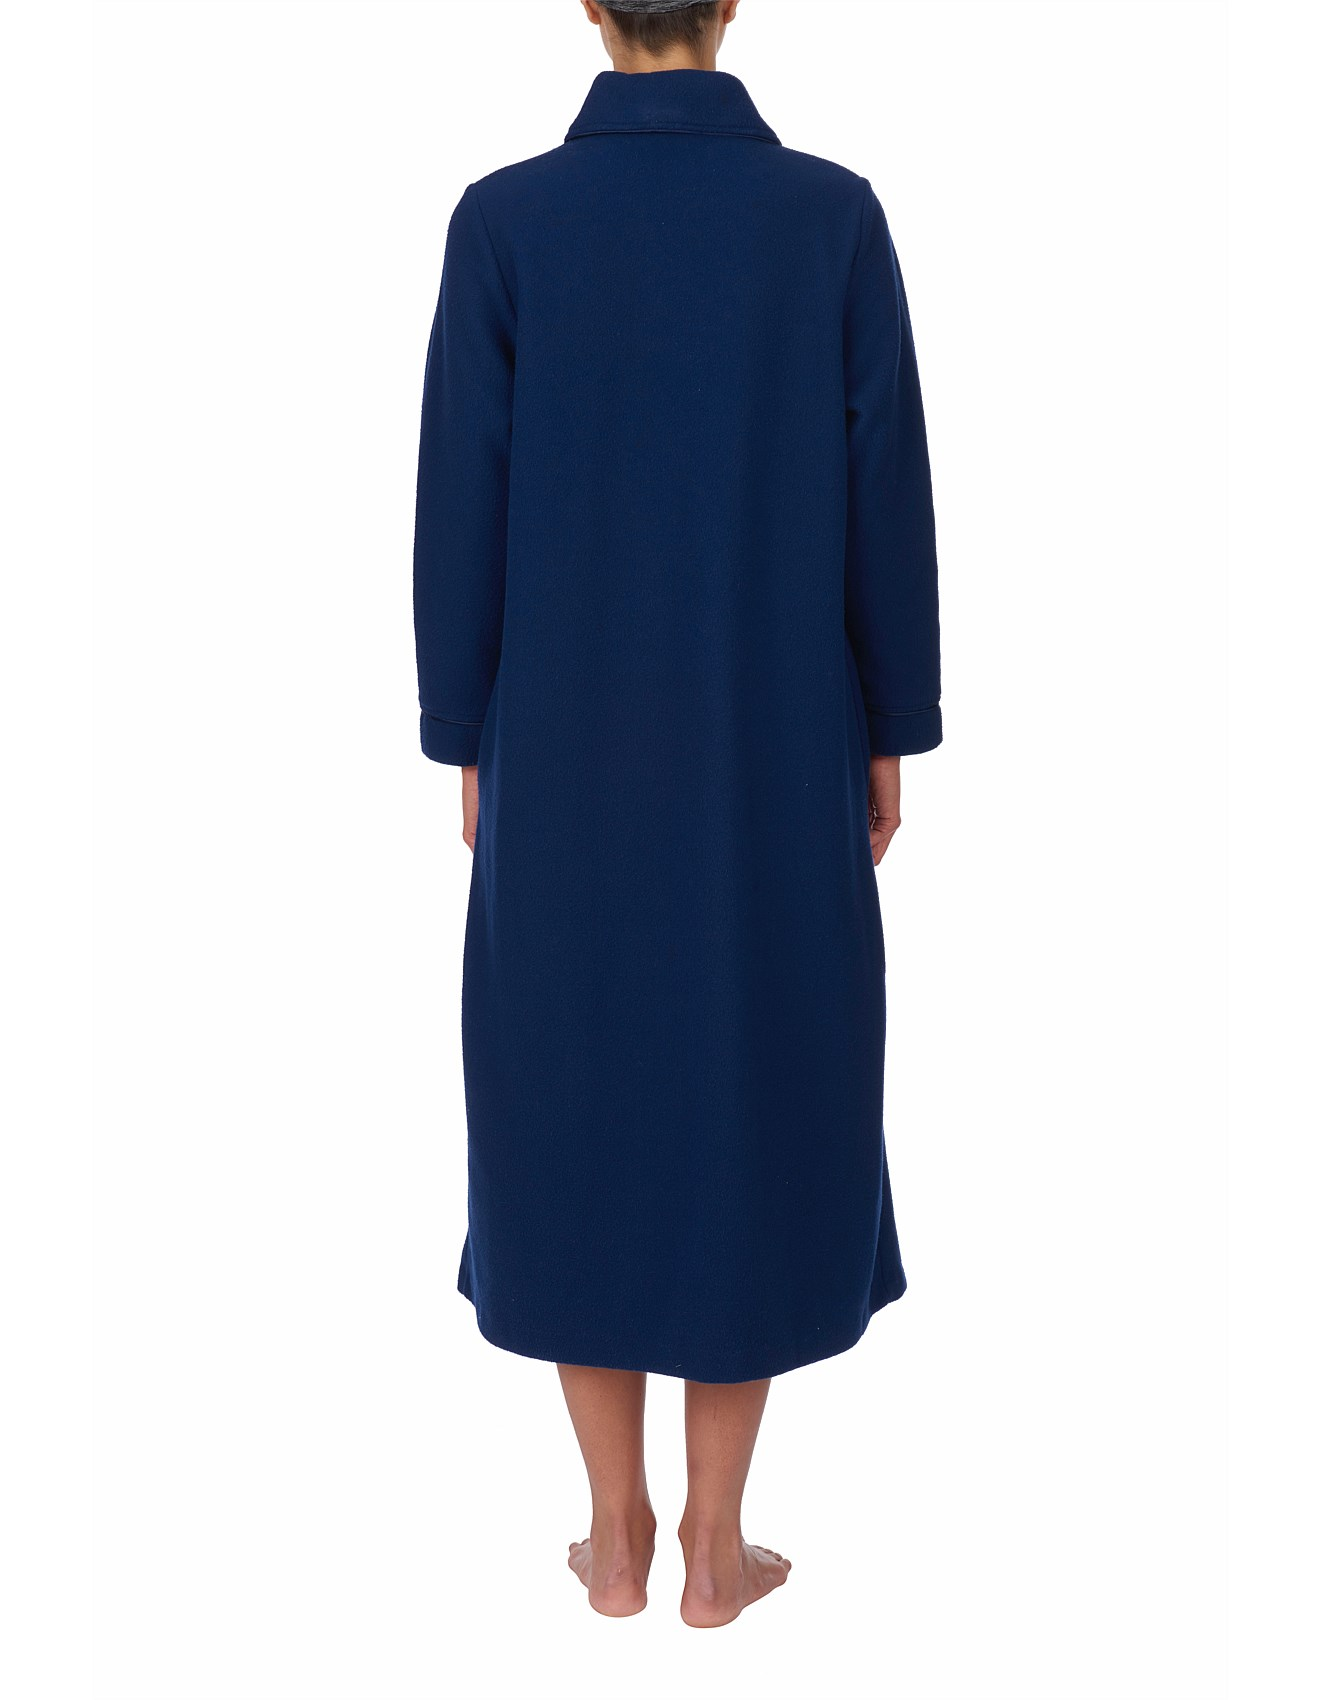 Dressing Gowns & Robes - Midlength Button Up Gown